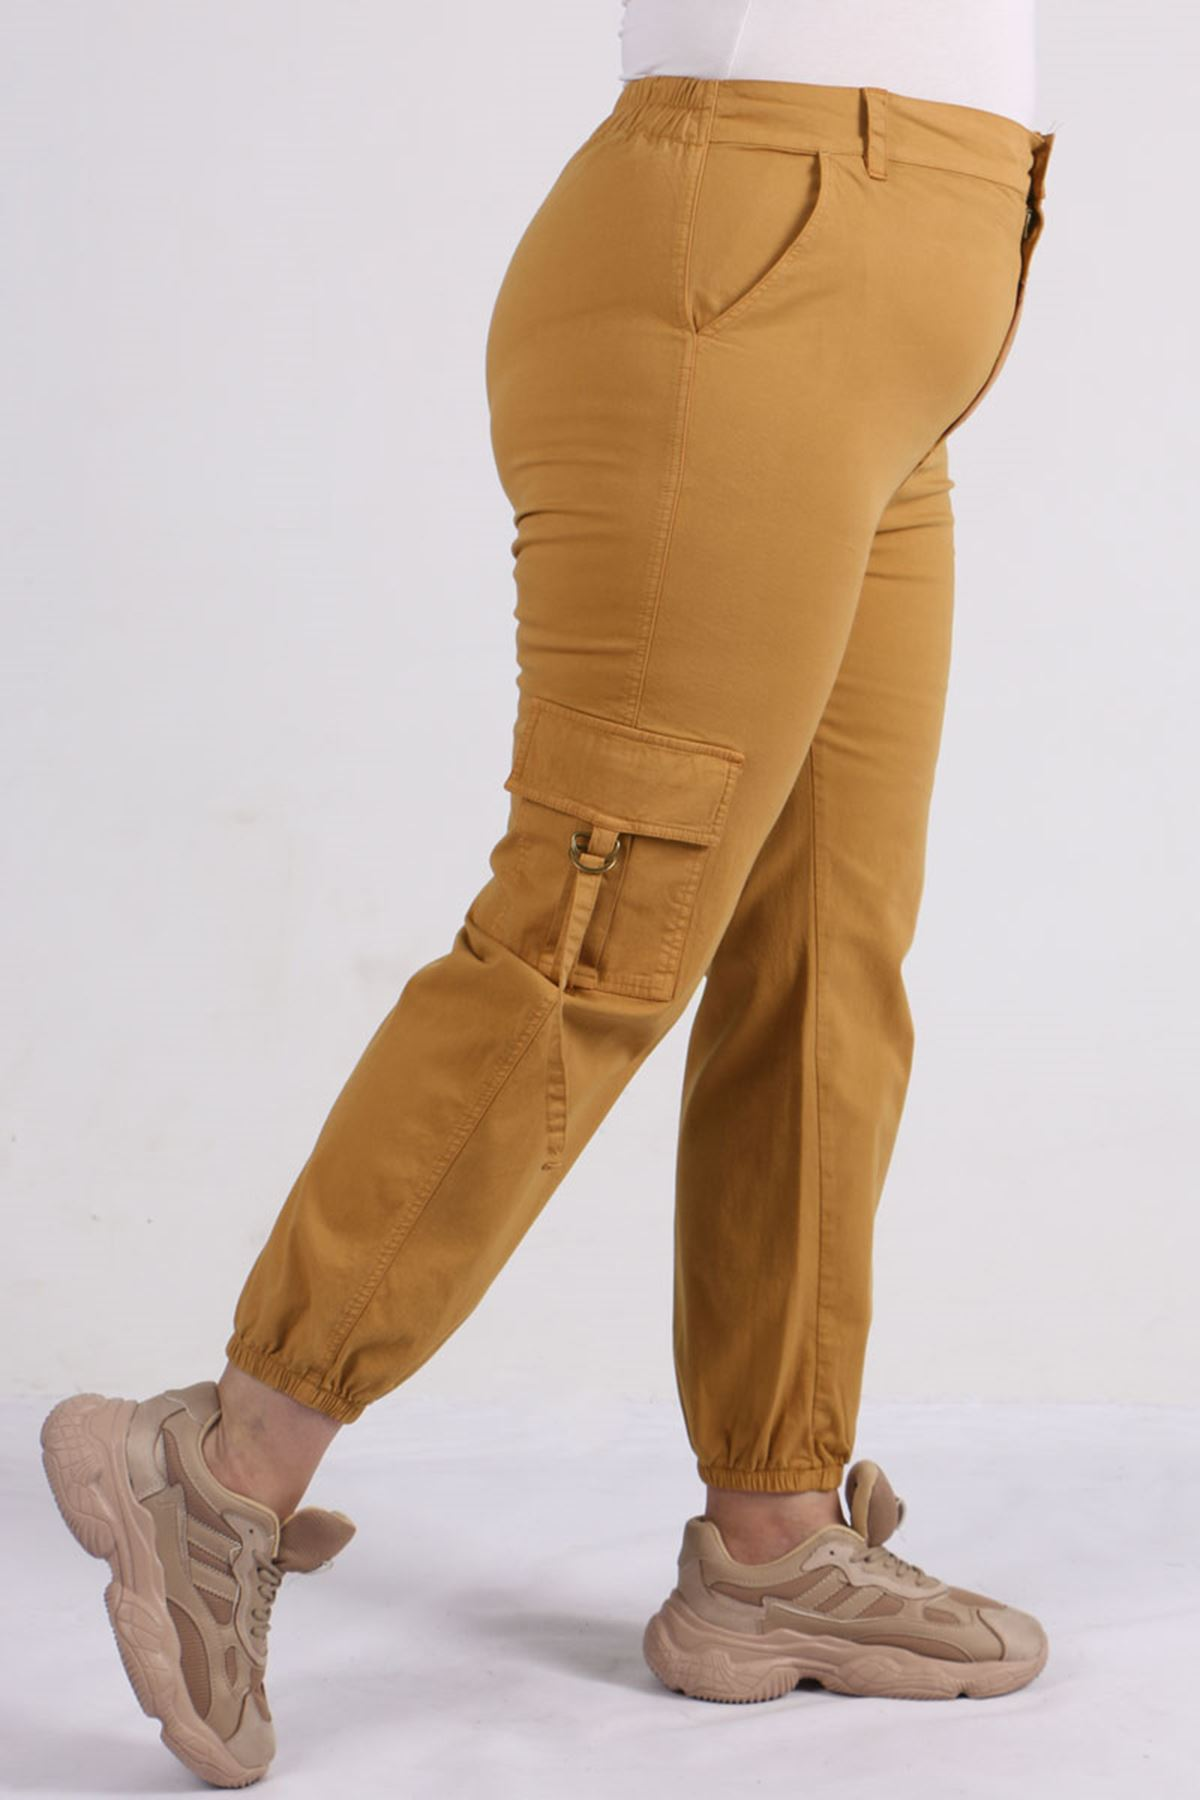 9128 Plus Size Cargo Pants with Pockets - Tan